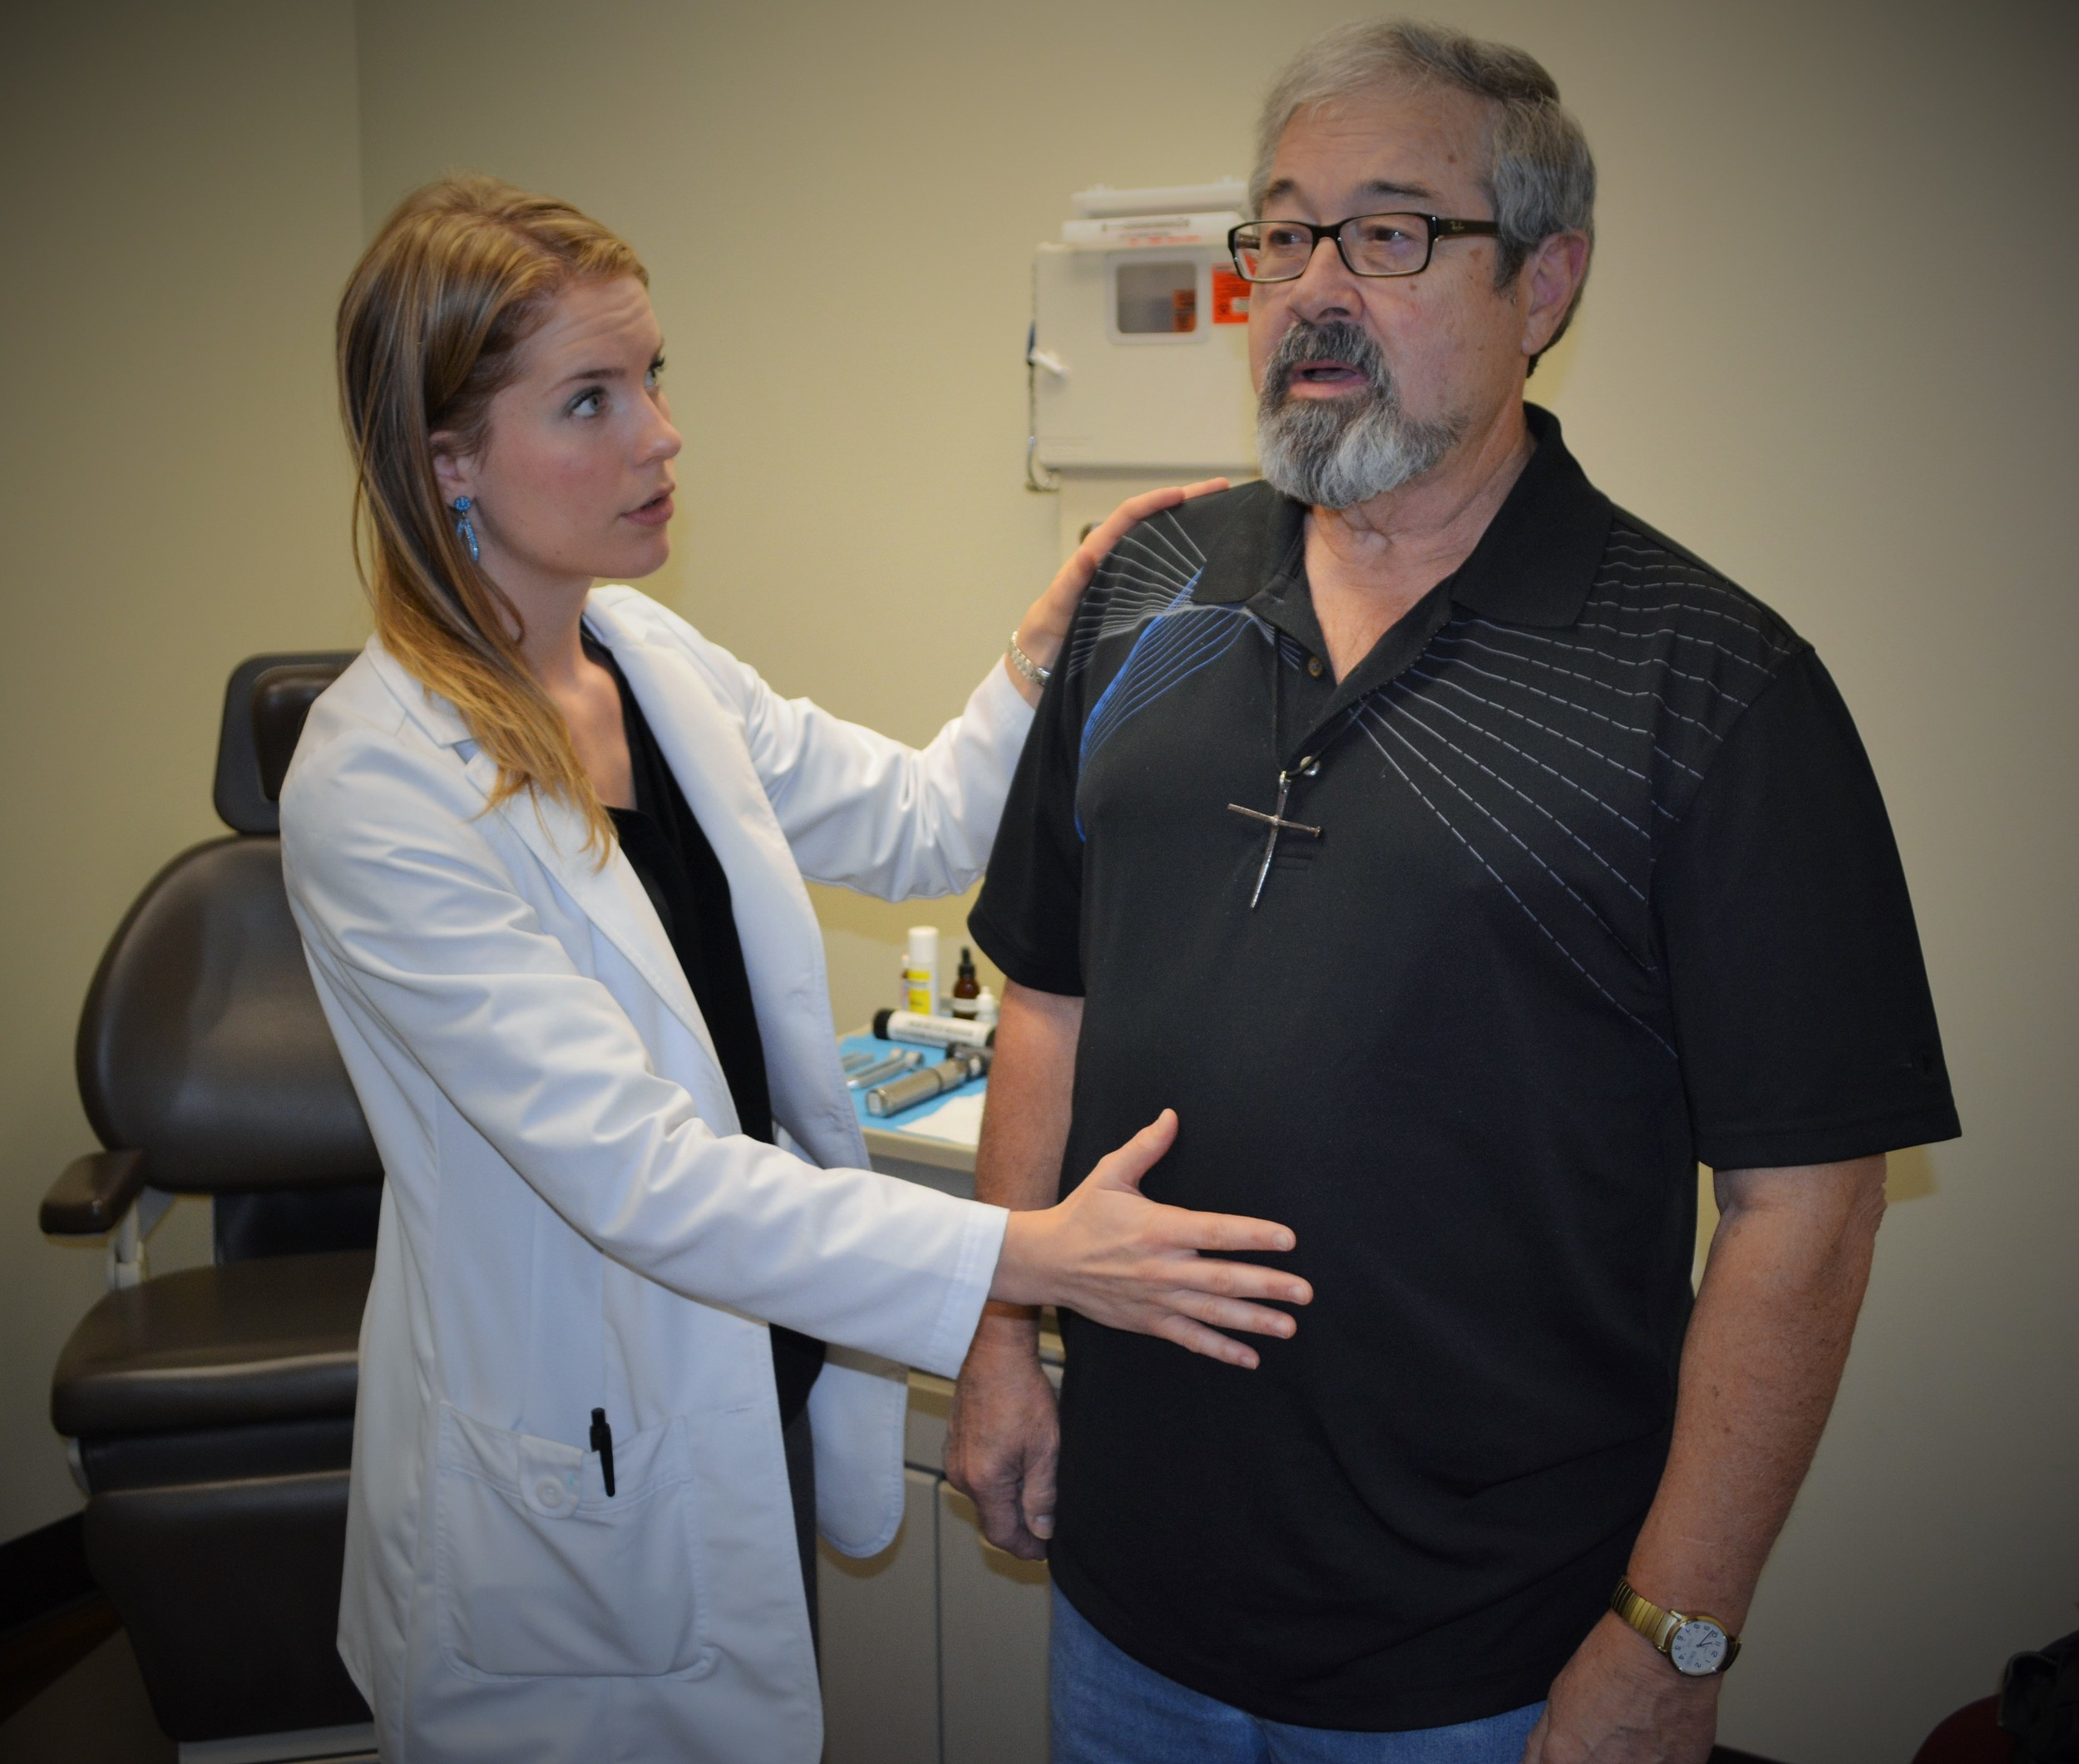 A patient learns the basics of proper breath support for speaking